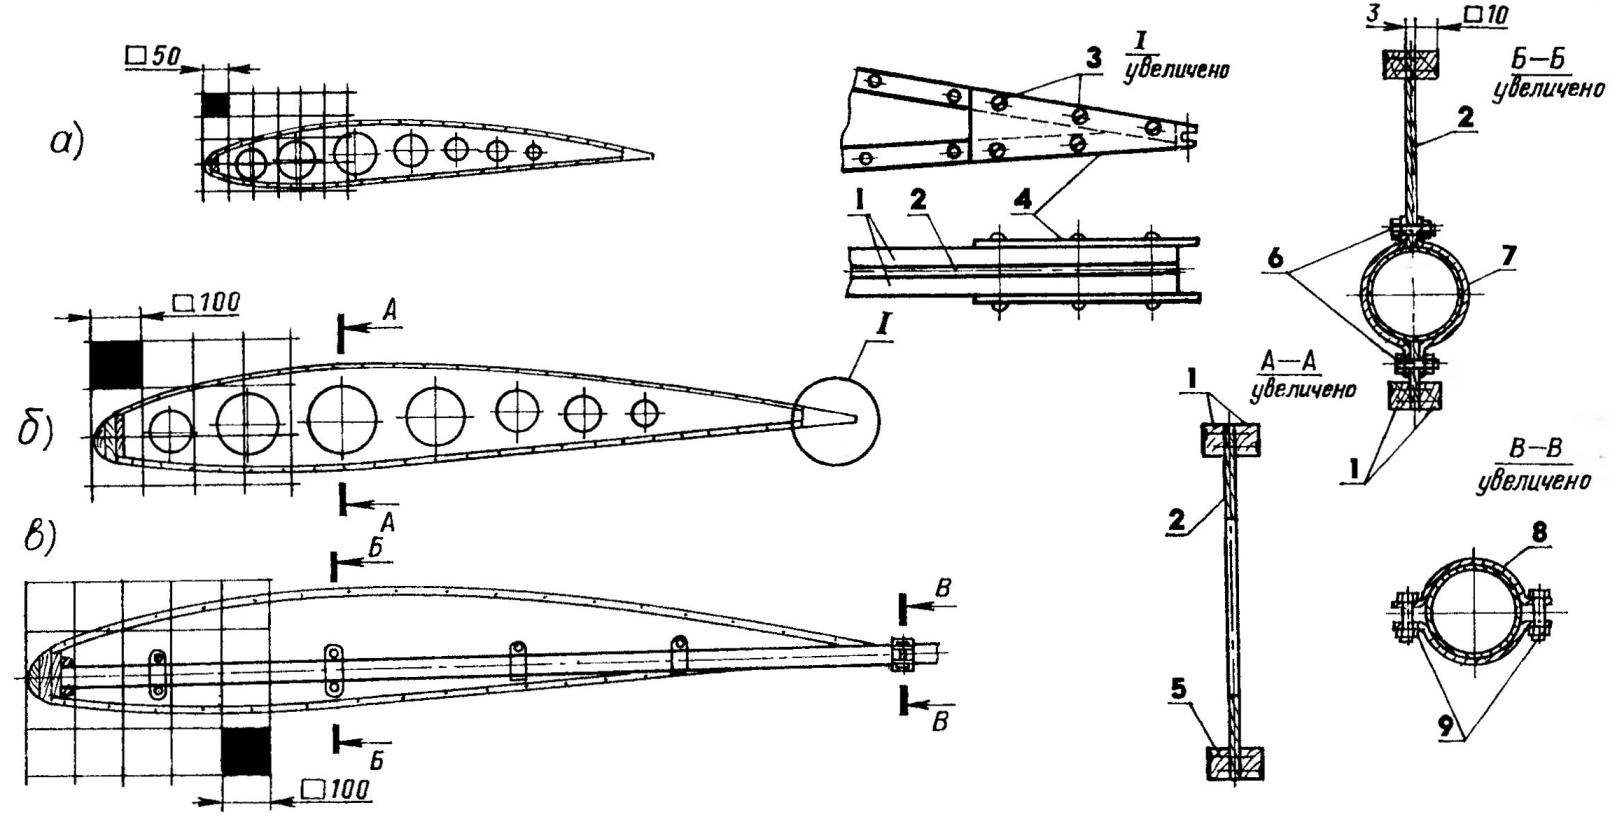 Rib No. 1 (a), rib No. 2 (b) and the Central rib (at) sail-wing